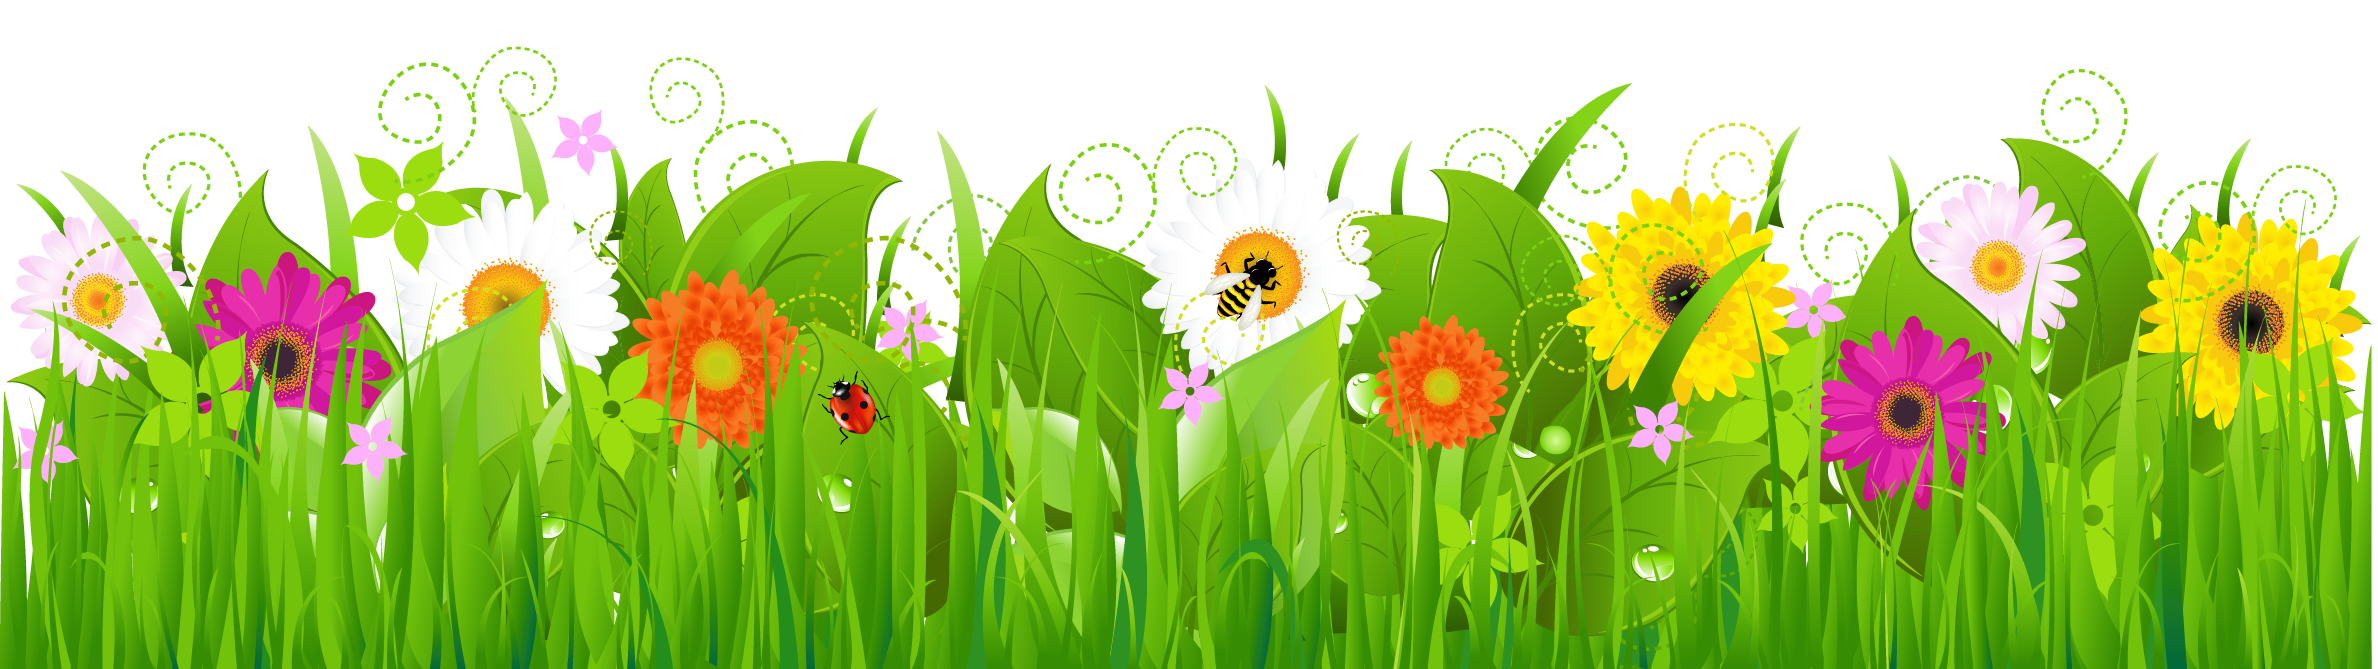 Bee on flower clipart svg royalty free Clipart grass and flowers - ClipartFest svg royalty free